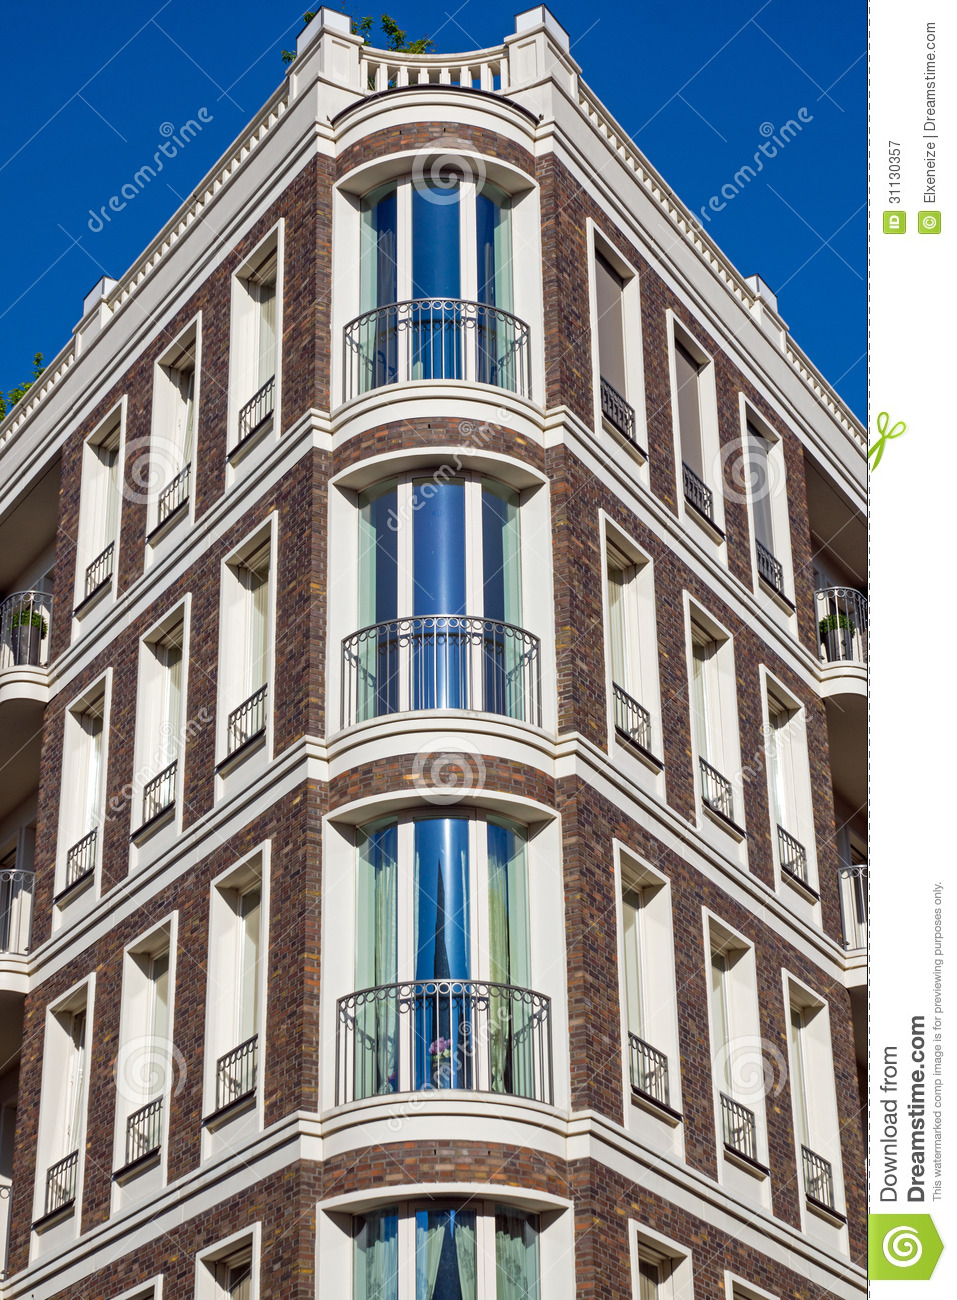 Beautiful townhouse in berlin royalty free stock for Townhouse architectural styles